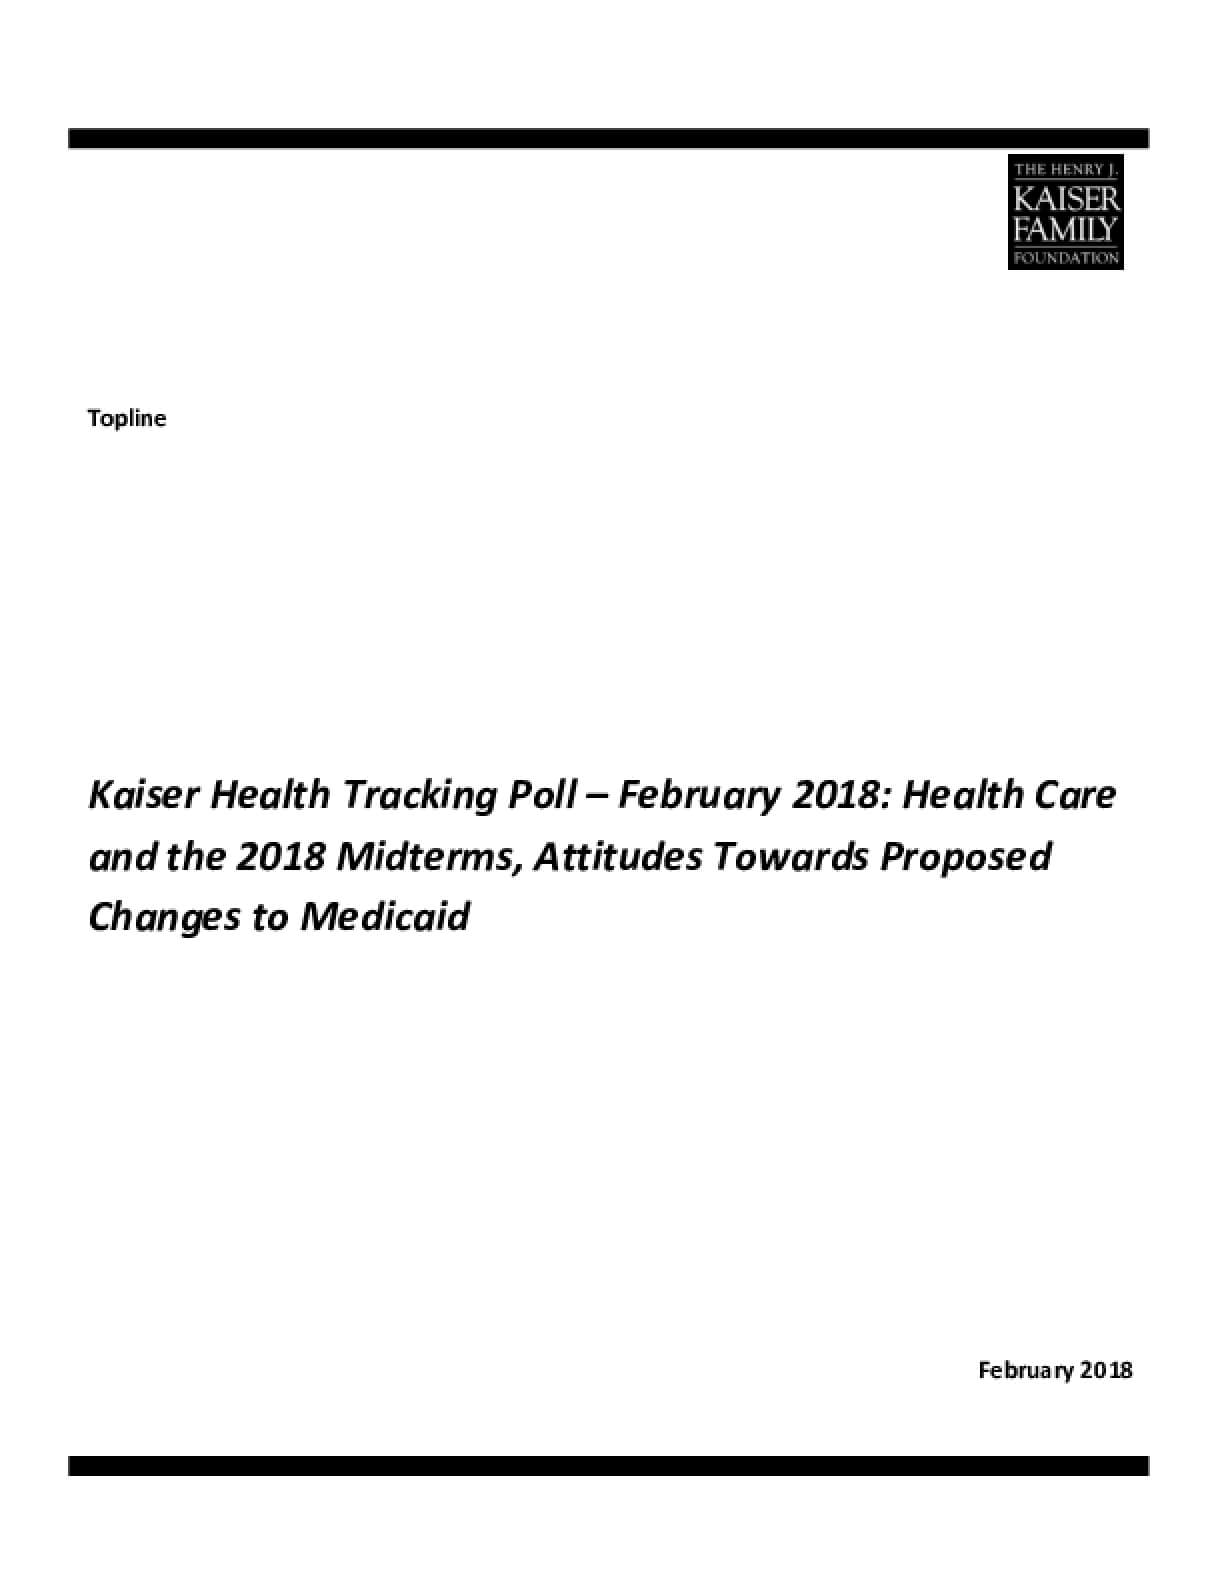 Kaiser Health Tracking Poll – February 2018 : Health Care and the 2018 Midterms, Attitudes Towards Proposed Changes to Medicaid